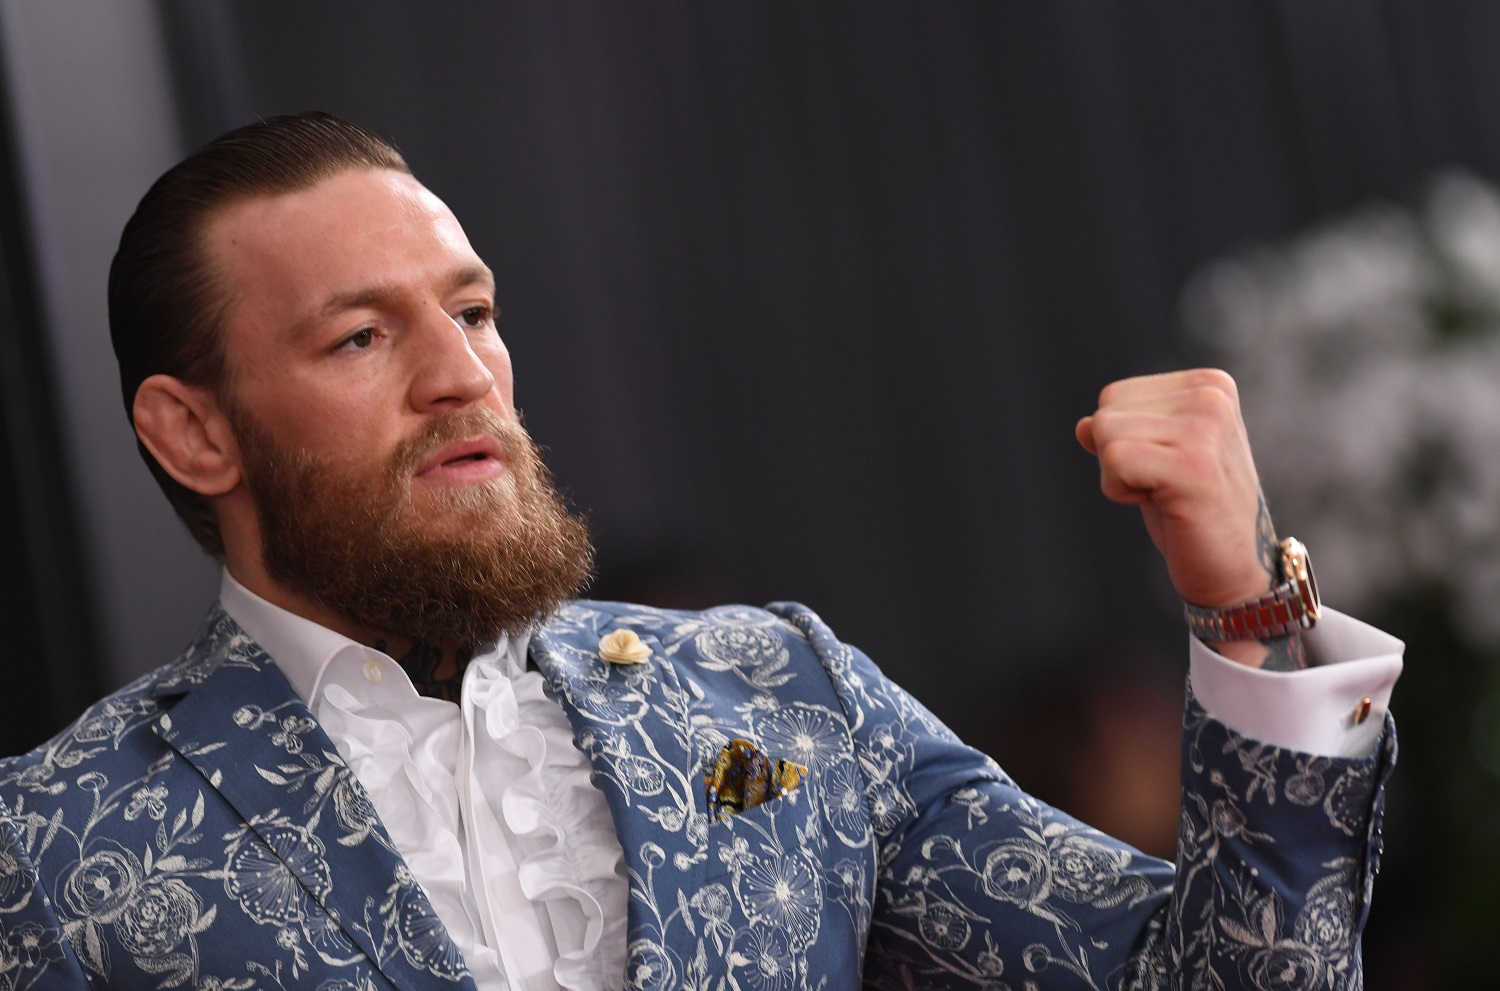 'Retired' Conor McGregor Accepts a Challenge From Diego Sanchez But Then Says He's Boxing Manny Pacquiao